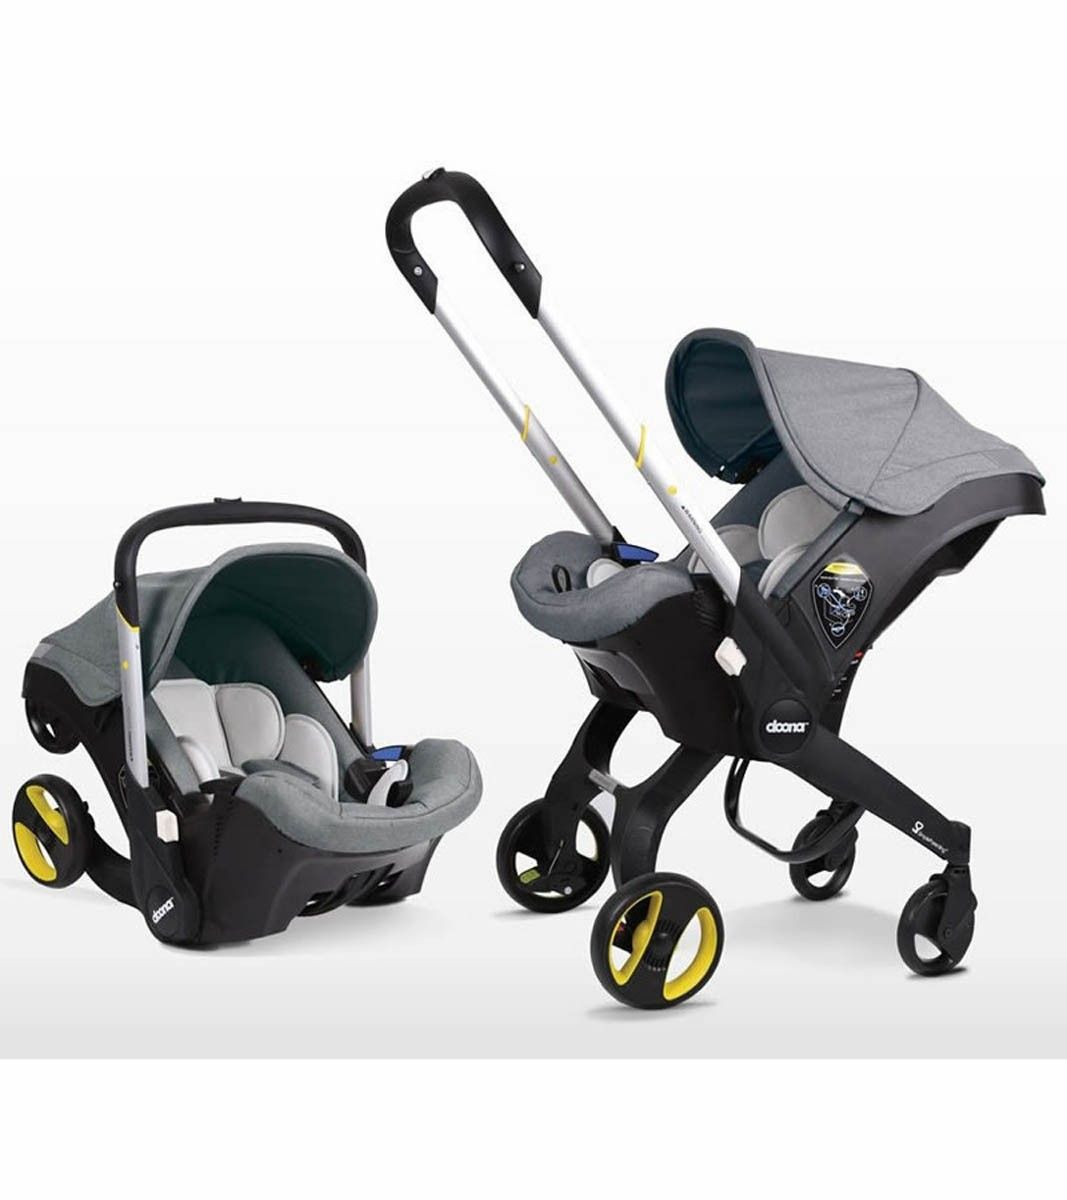 The versatile Doona Infant Car Seat is a complete travel system that